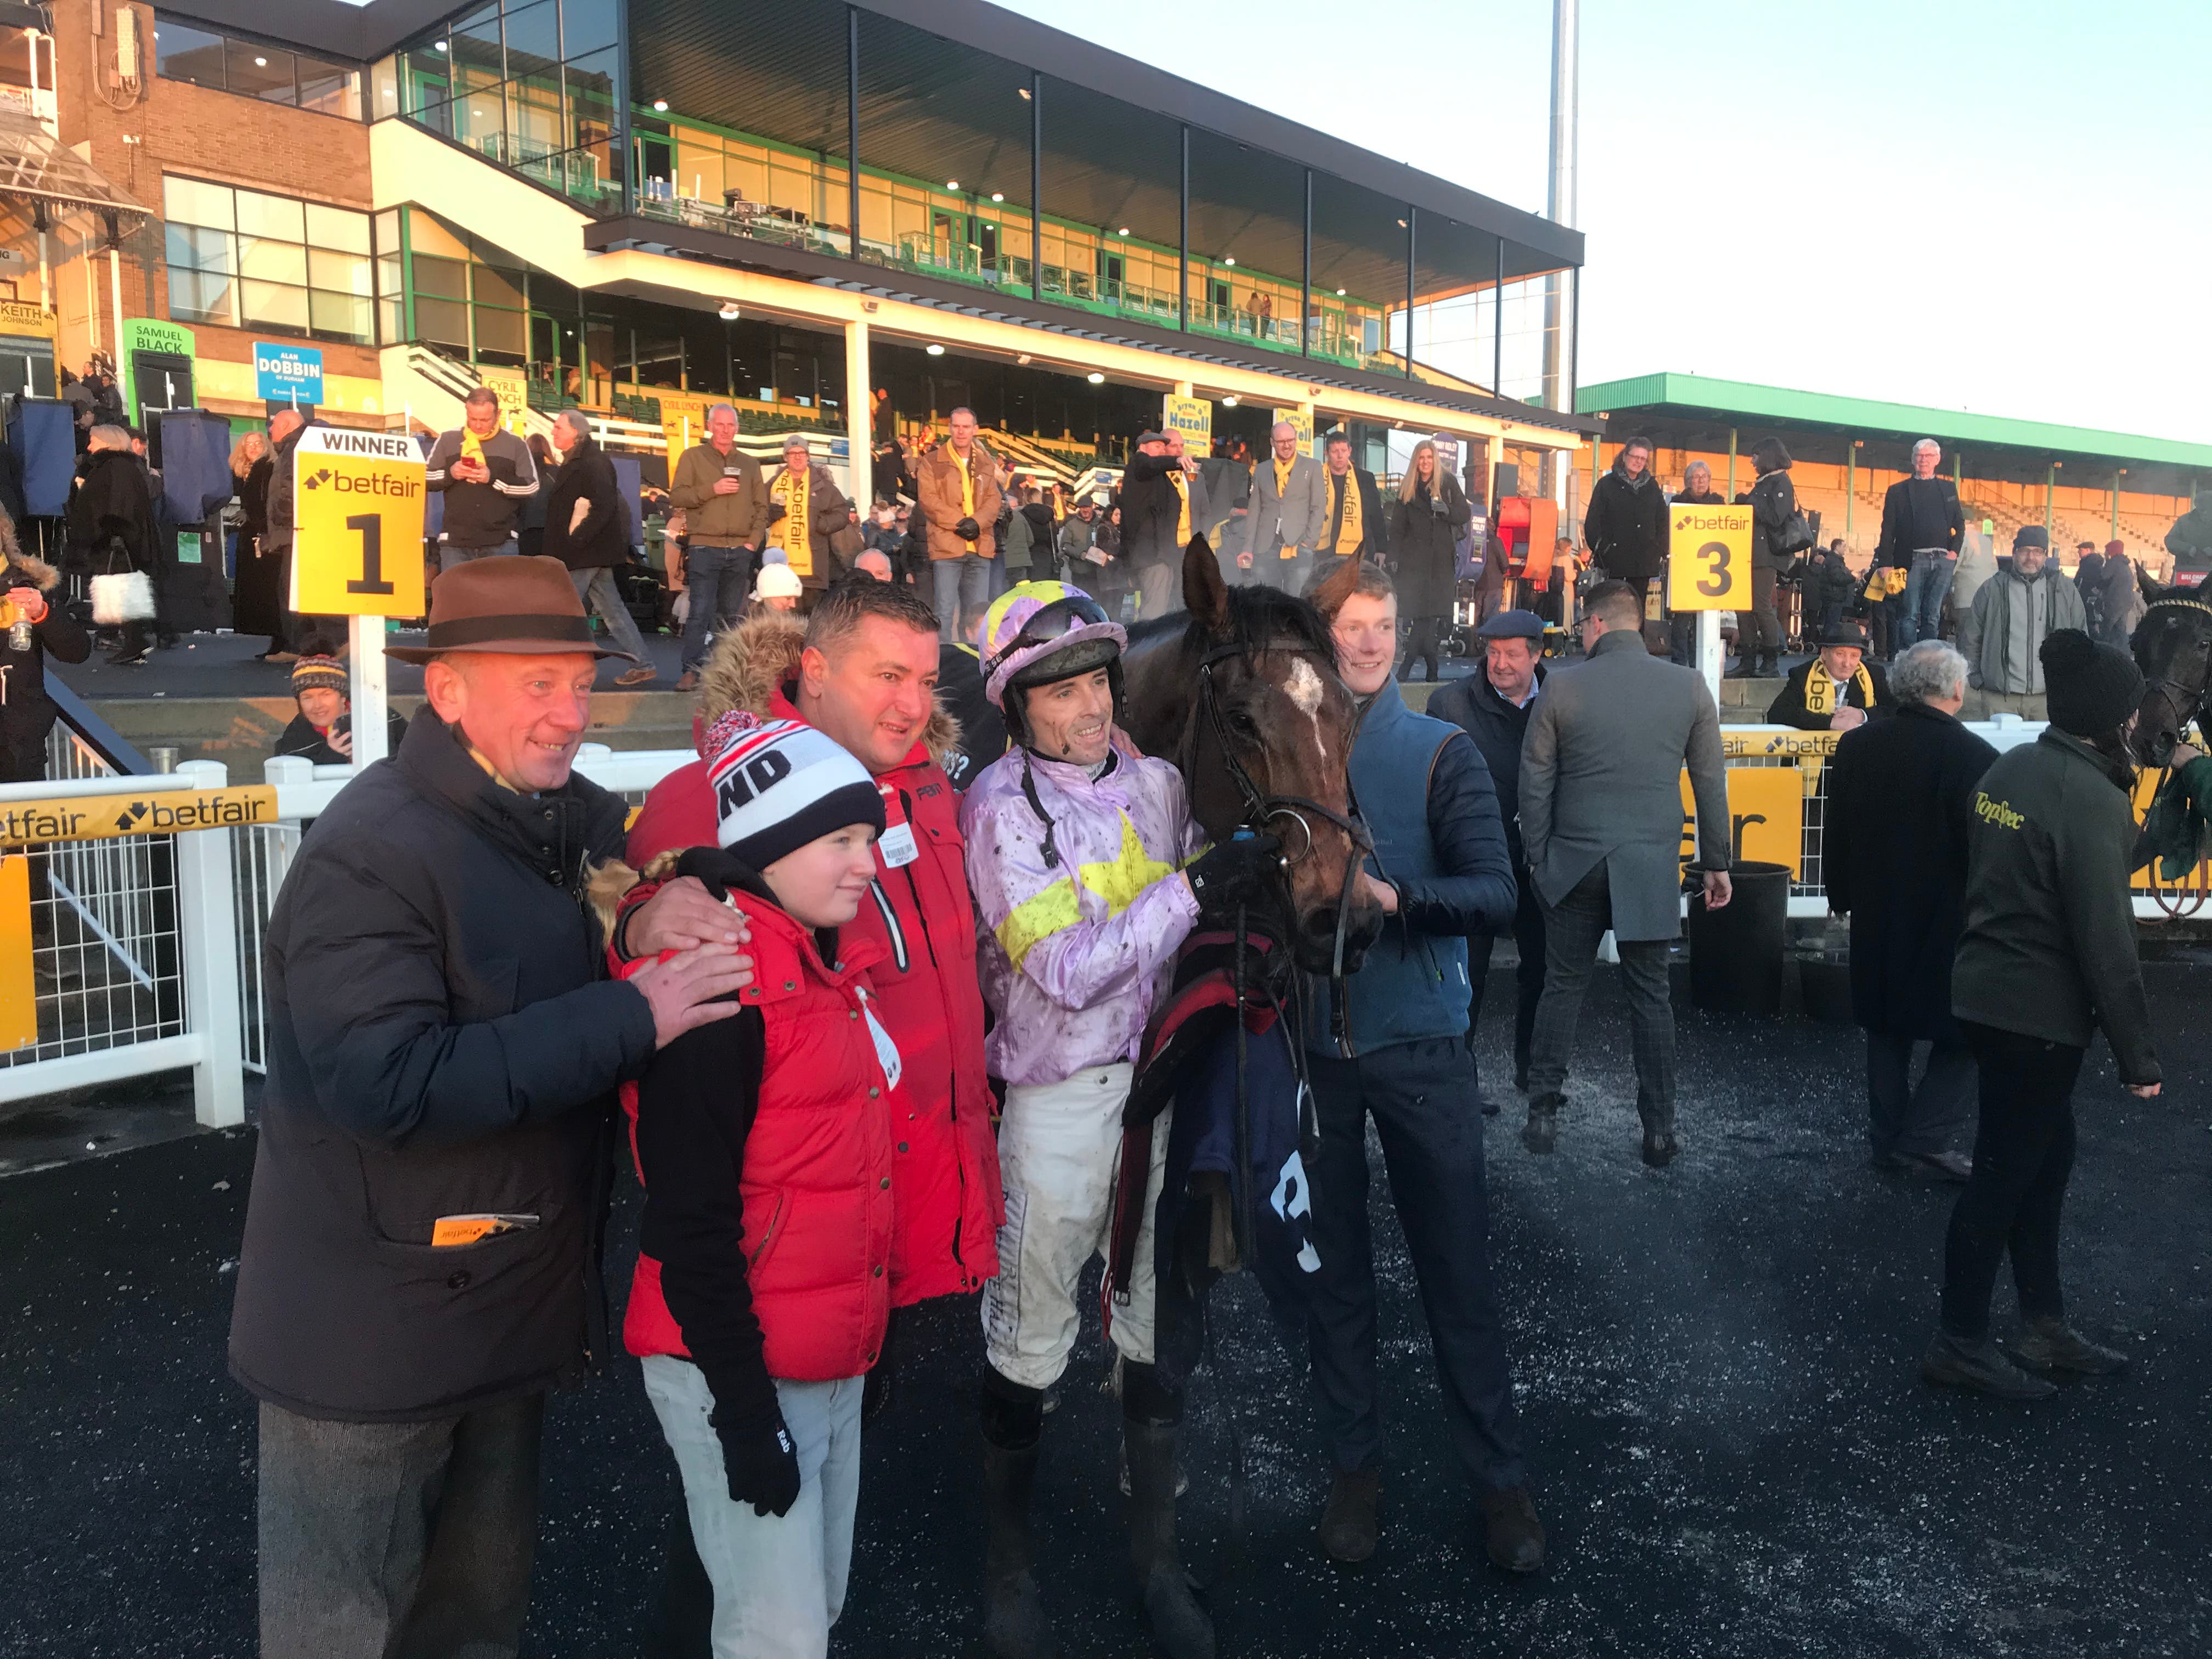 Takingrisks after winning the Rehearsal Chase at Newcastle (Ashley Iveson/PA)